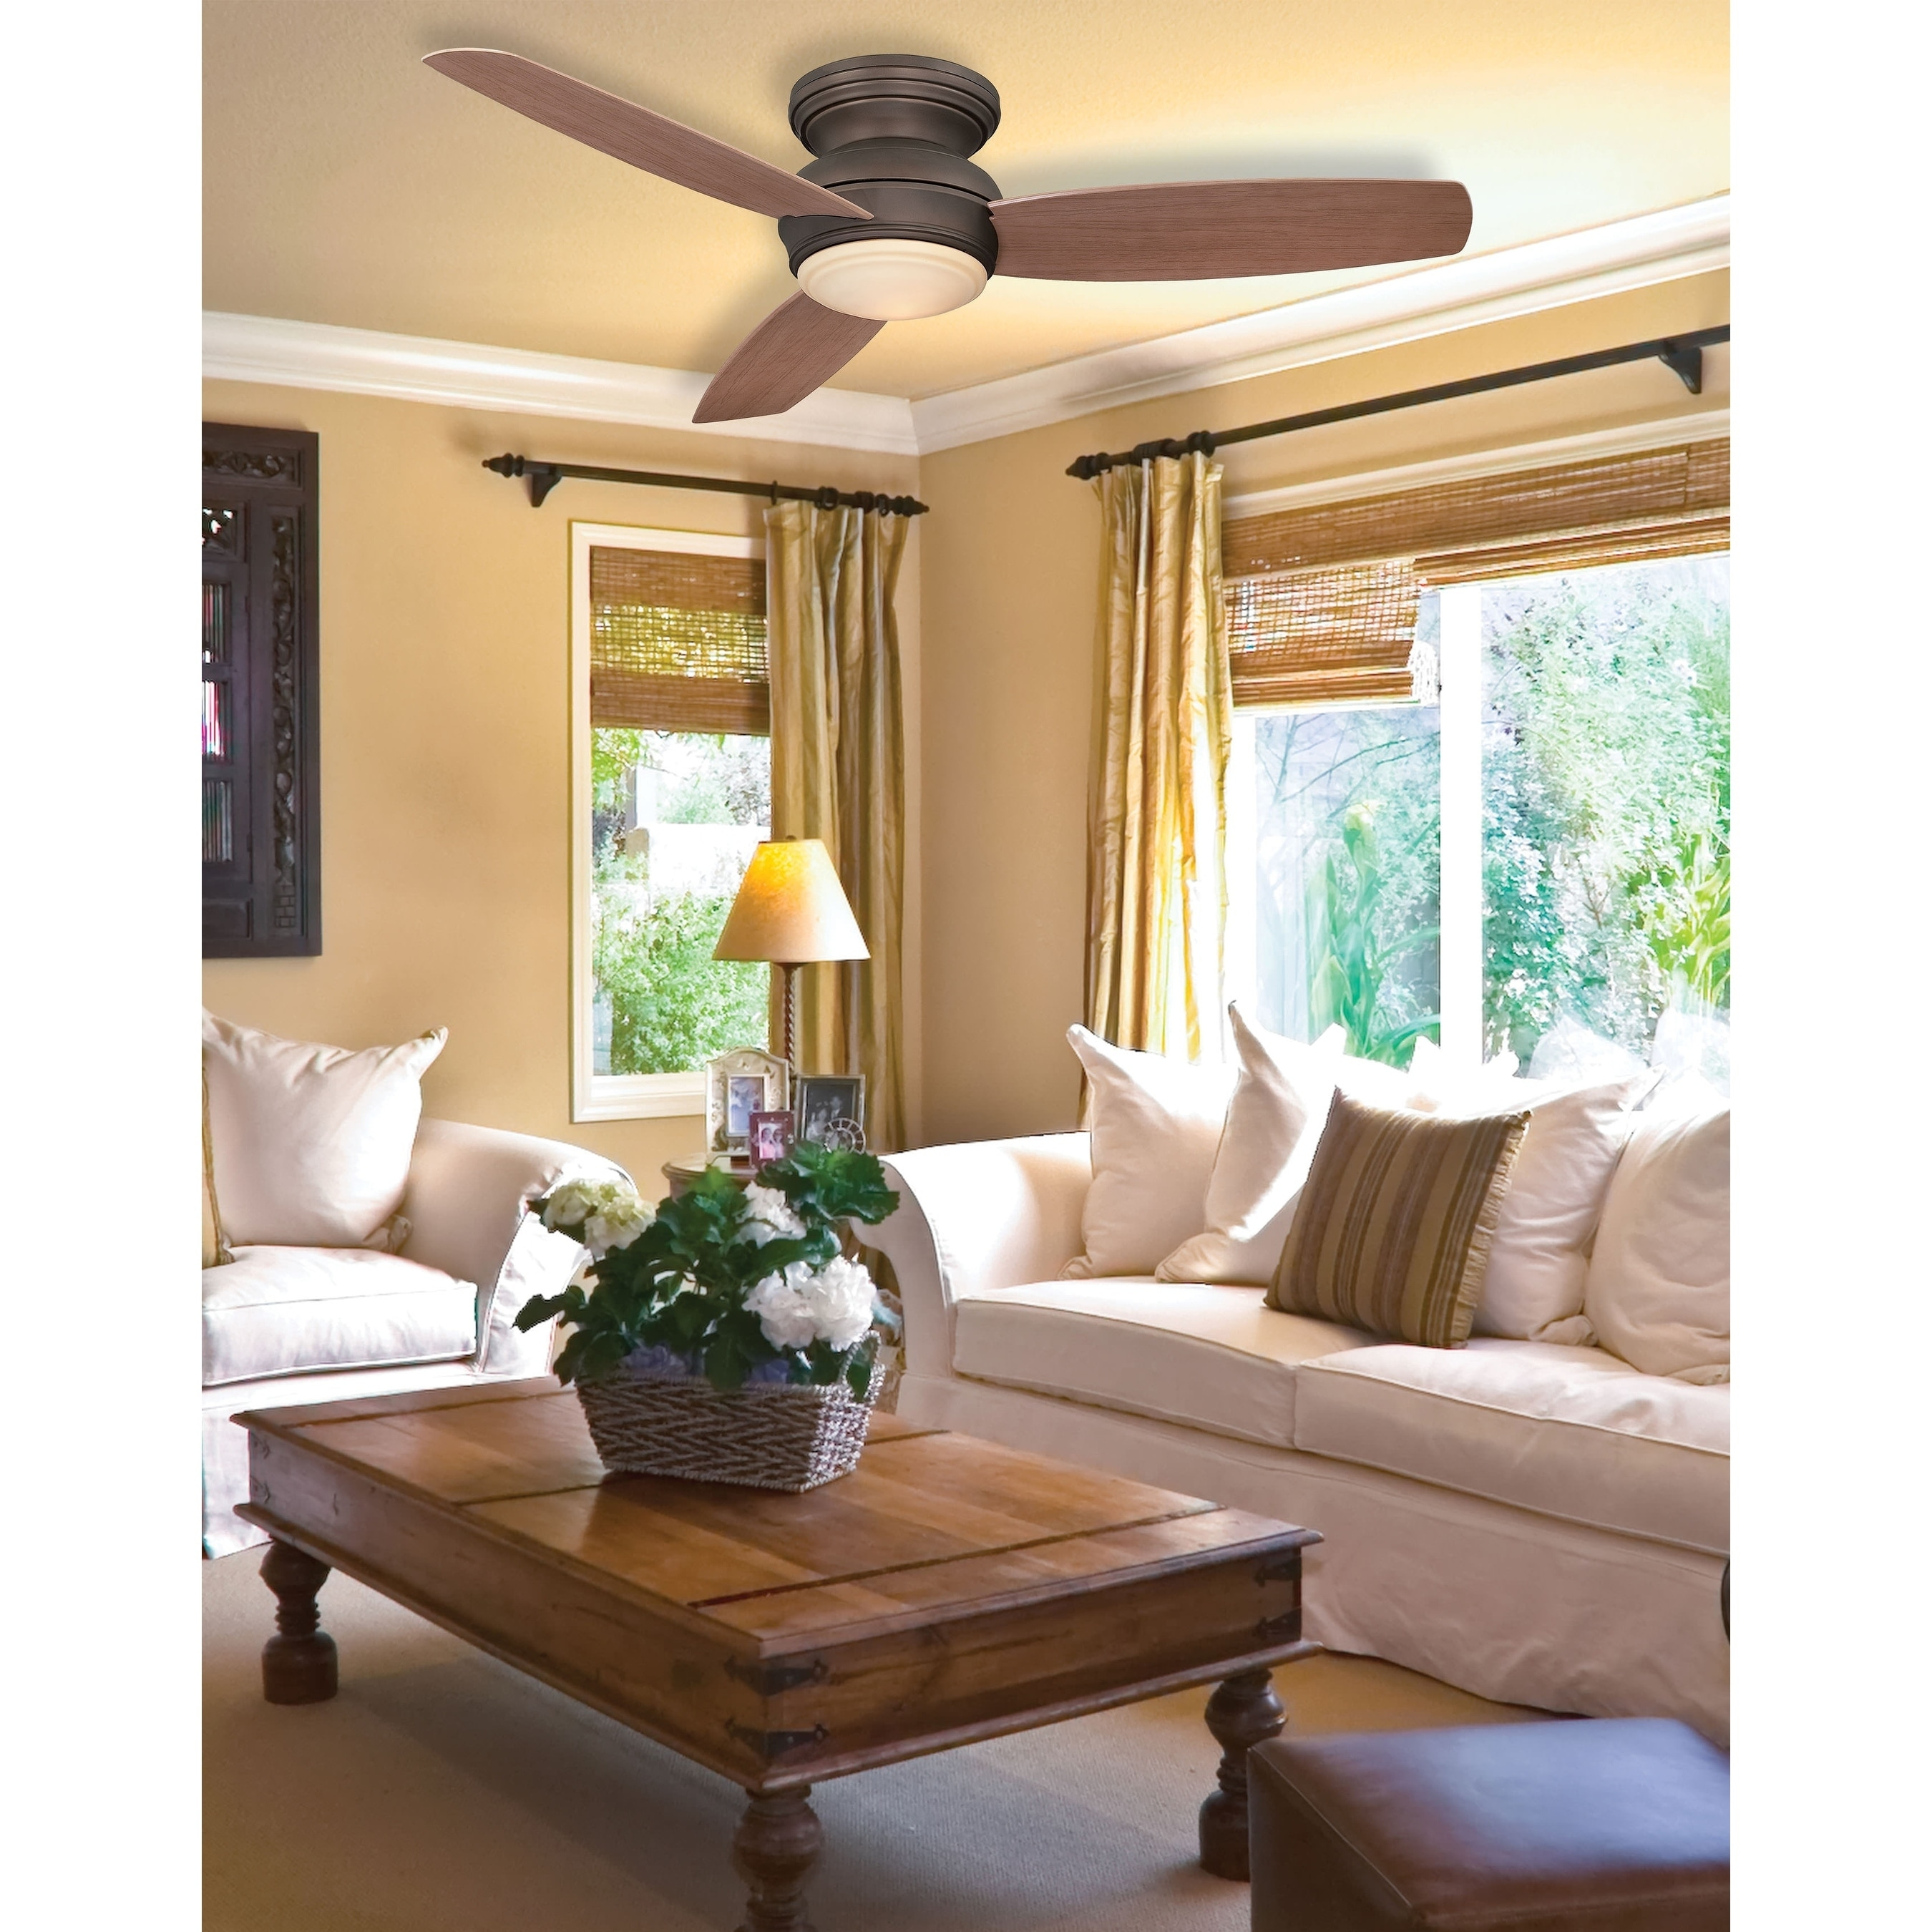 Ceiling Fan Light Kits Home Kitchen Minka Aire Concept I Led 52 Indoor Outdoor Ceiling Fan Oil Rubbed Bronze Finish 1897033